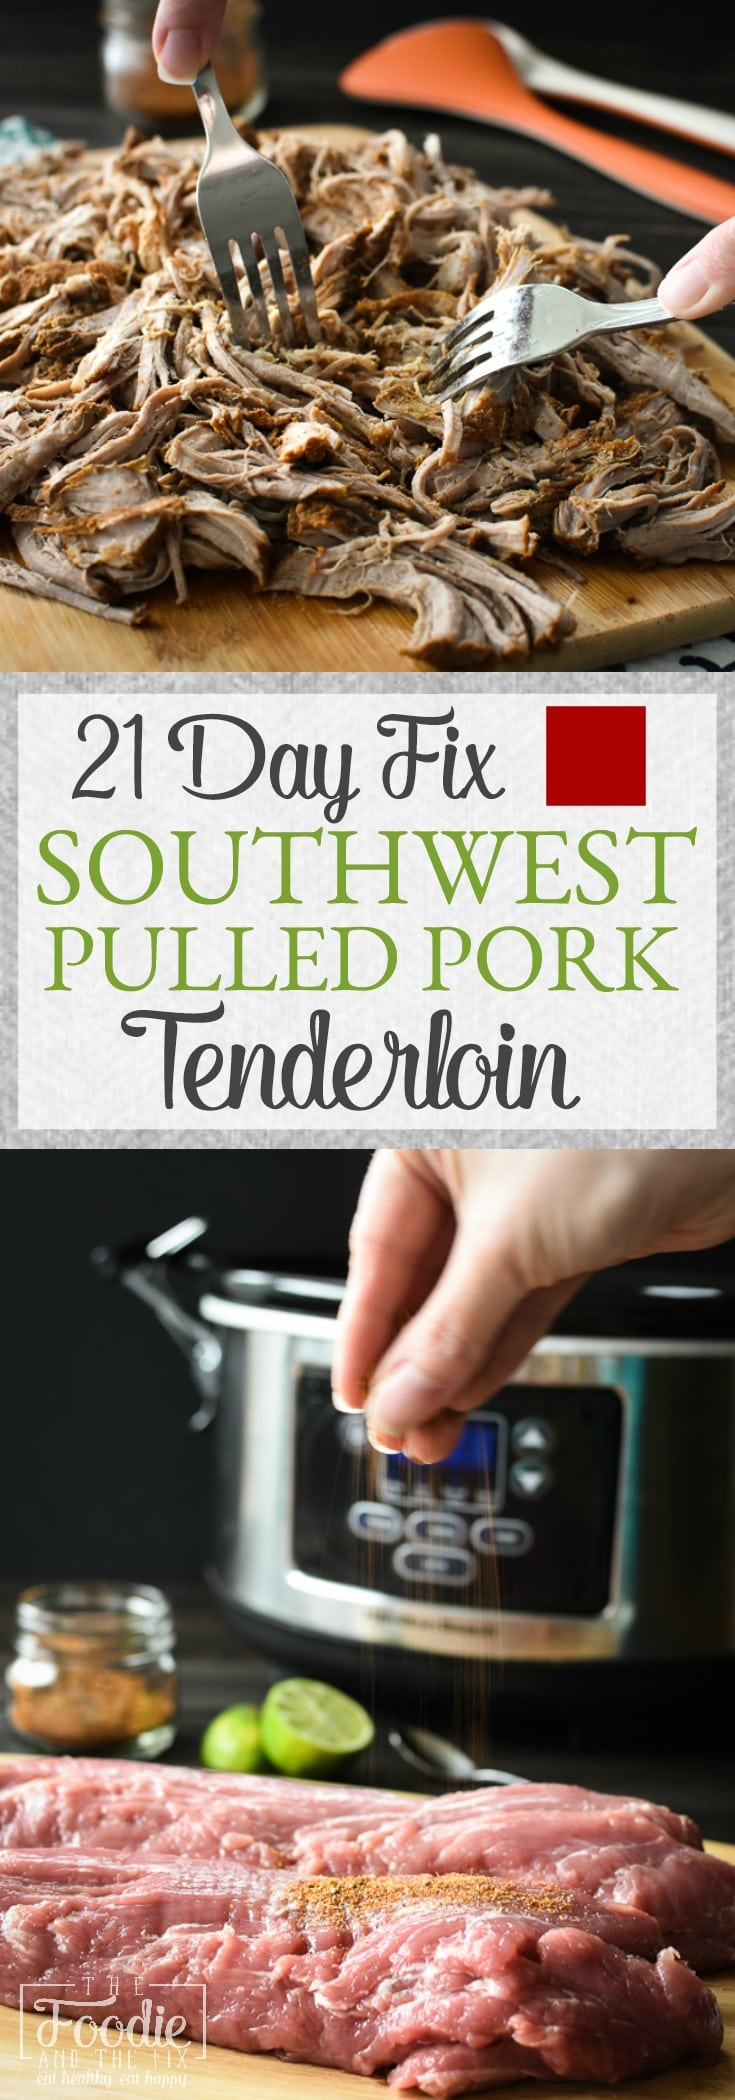 This Slow-Cooker 21 Day Fix Southwestern Pulled Pork Tenderloin makes a delicious, healthy base for tacos, BBQ sandwiches, soups and so much more! Make it on Sunday and use throughout the week for quick, easy dinners! Gluten Free | Dairy Free